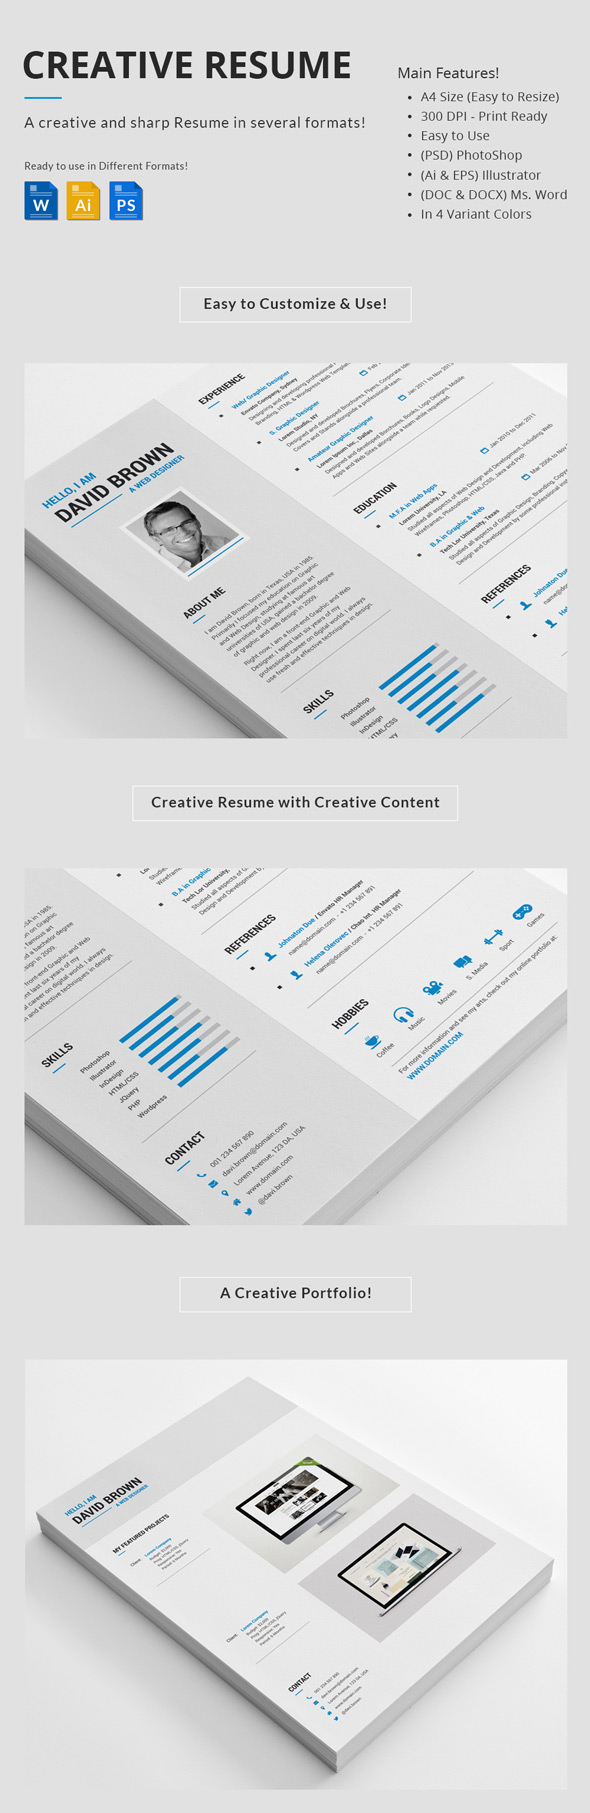 professional creative resume set - Different Formats For Resumes